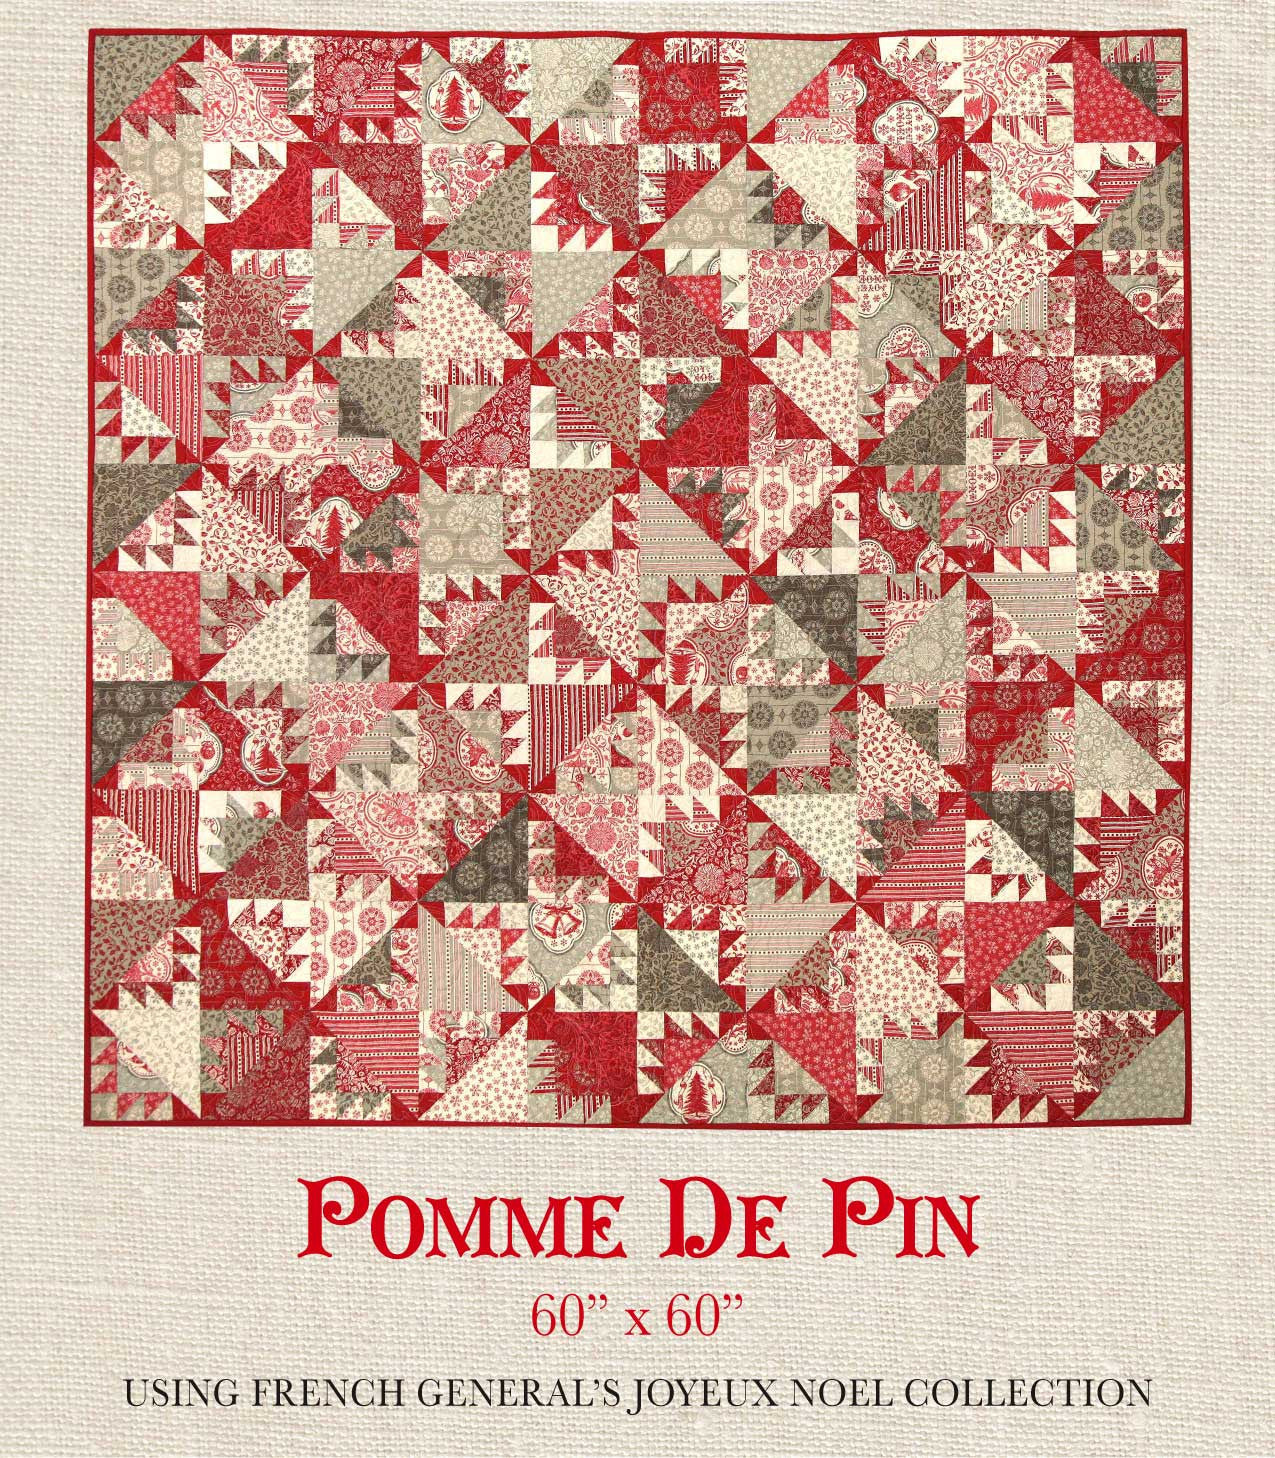 joyeux noel pomme de pin quilt pattern french general. Black Bedroom Furniture Sets. Home Design Ideas